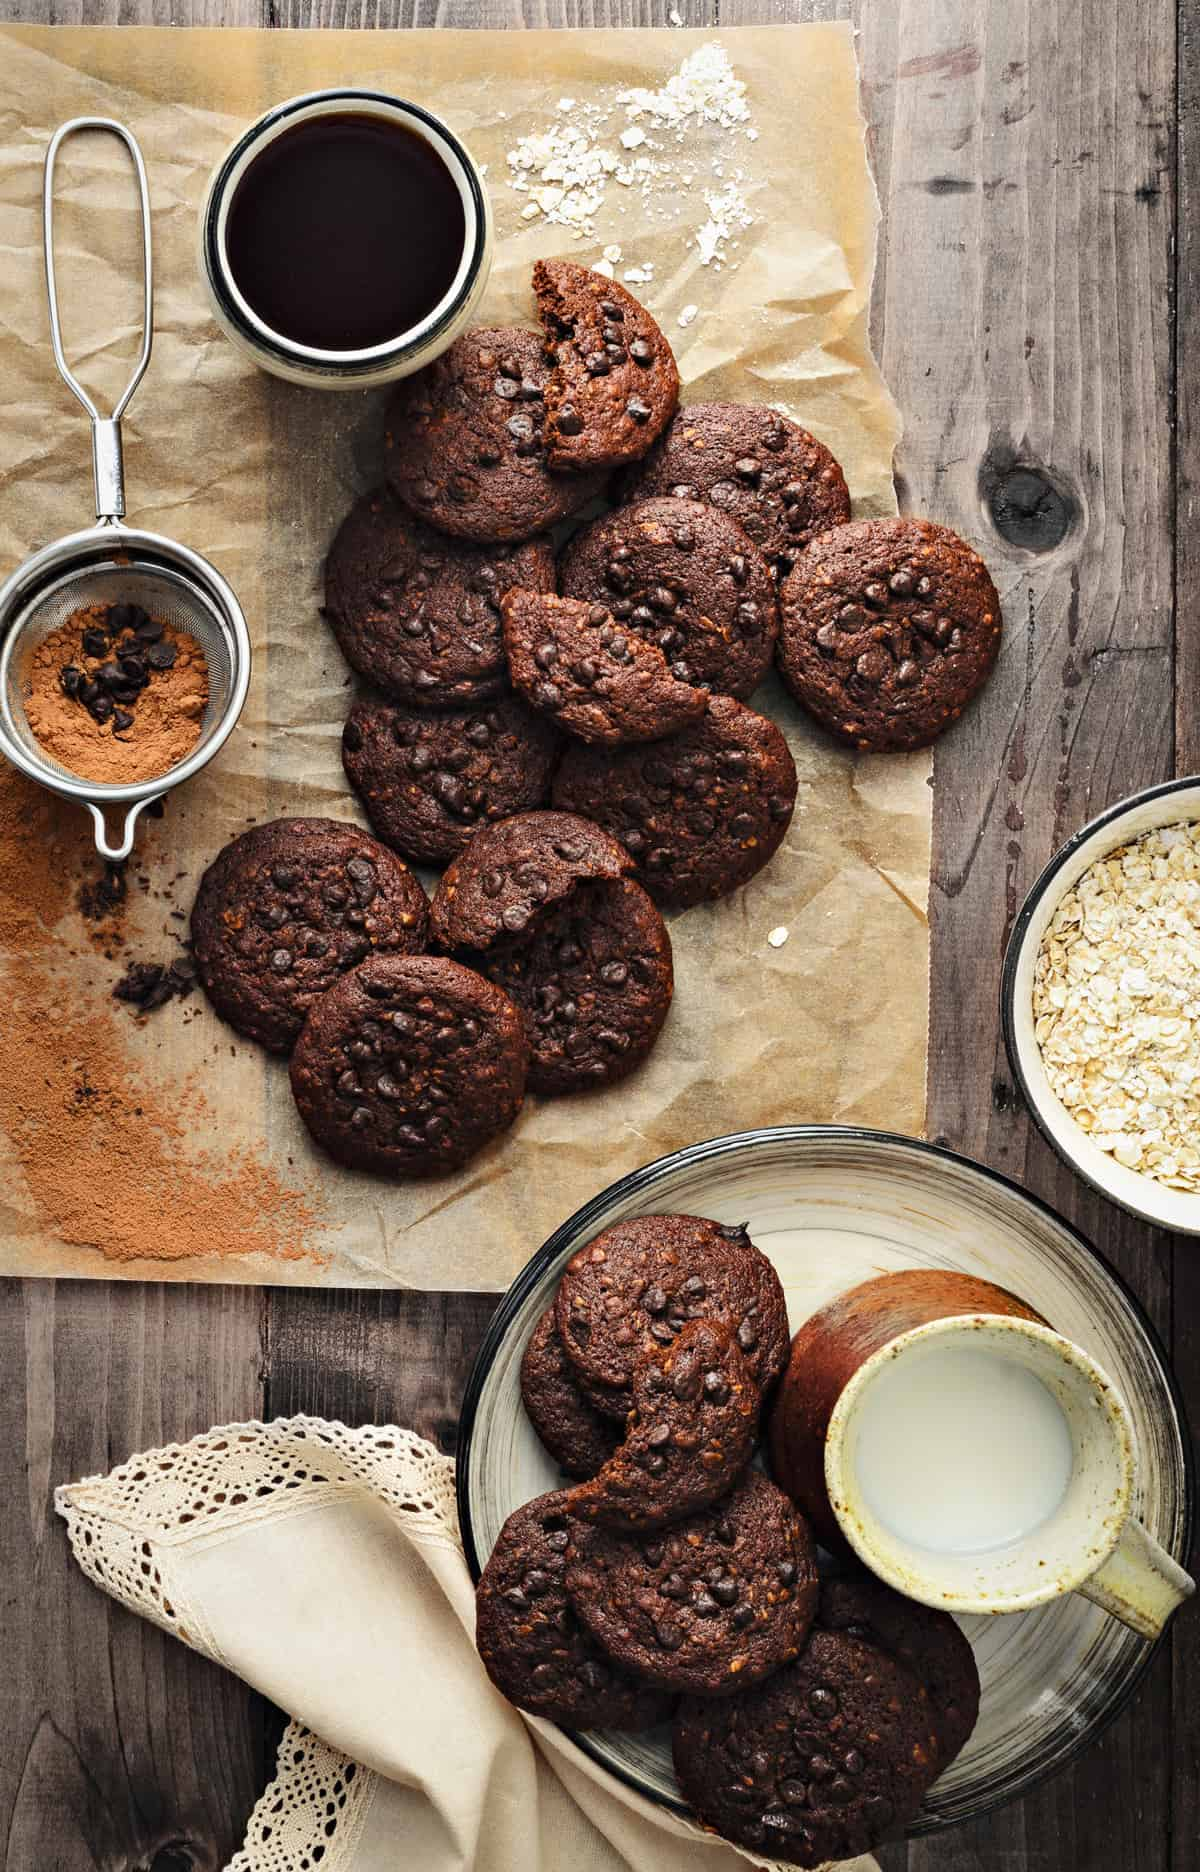 Chocolate Oats cookies on brown paper and plate, with milk, coffee and oats on side.